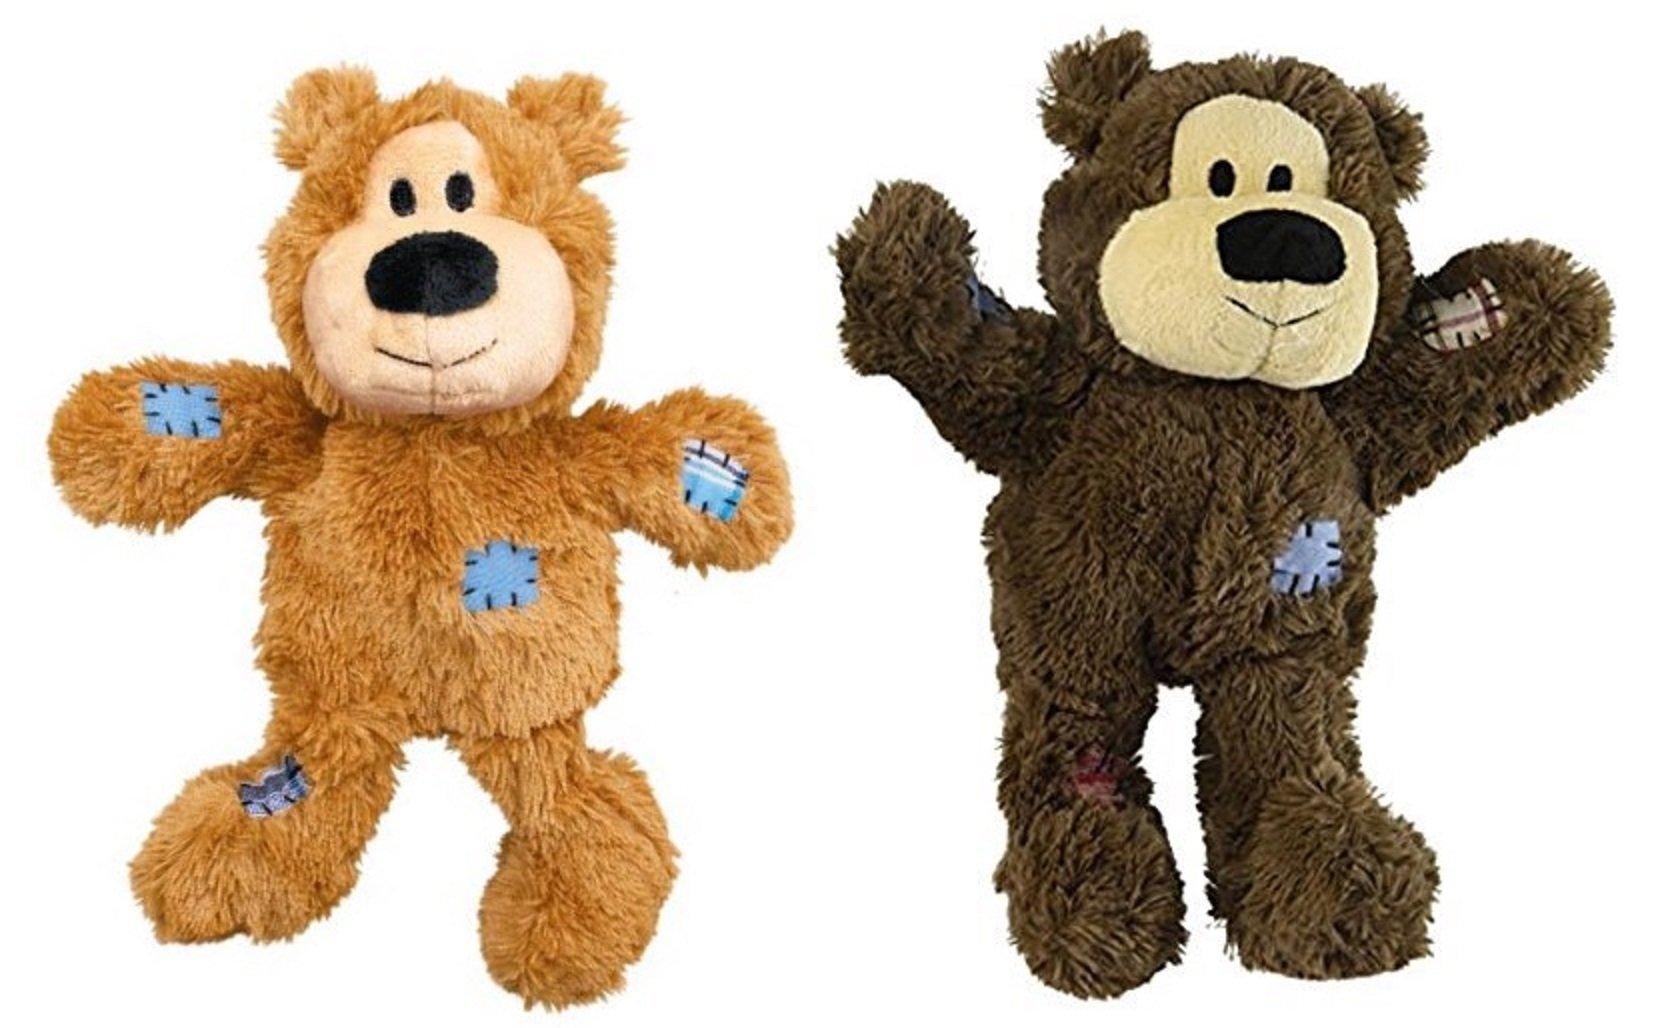 Kong Wild Knots Bears Durable Dog Toys Size:Med/Large Pack of 2 by KONG